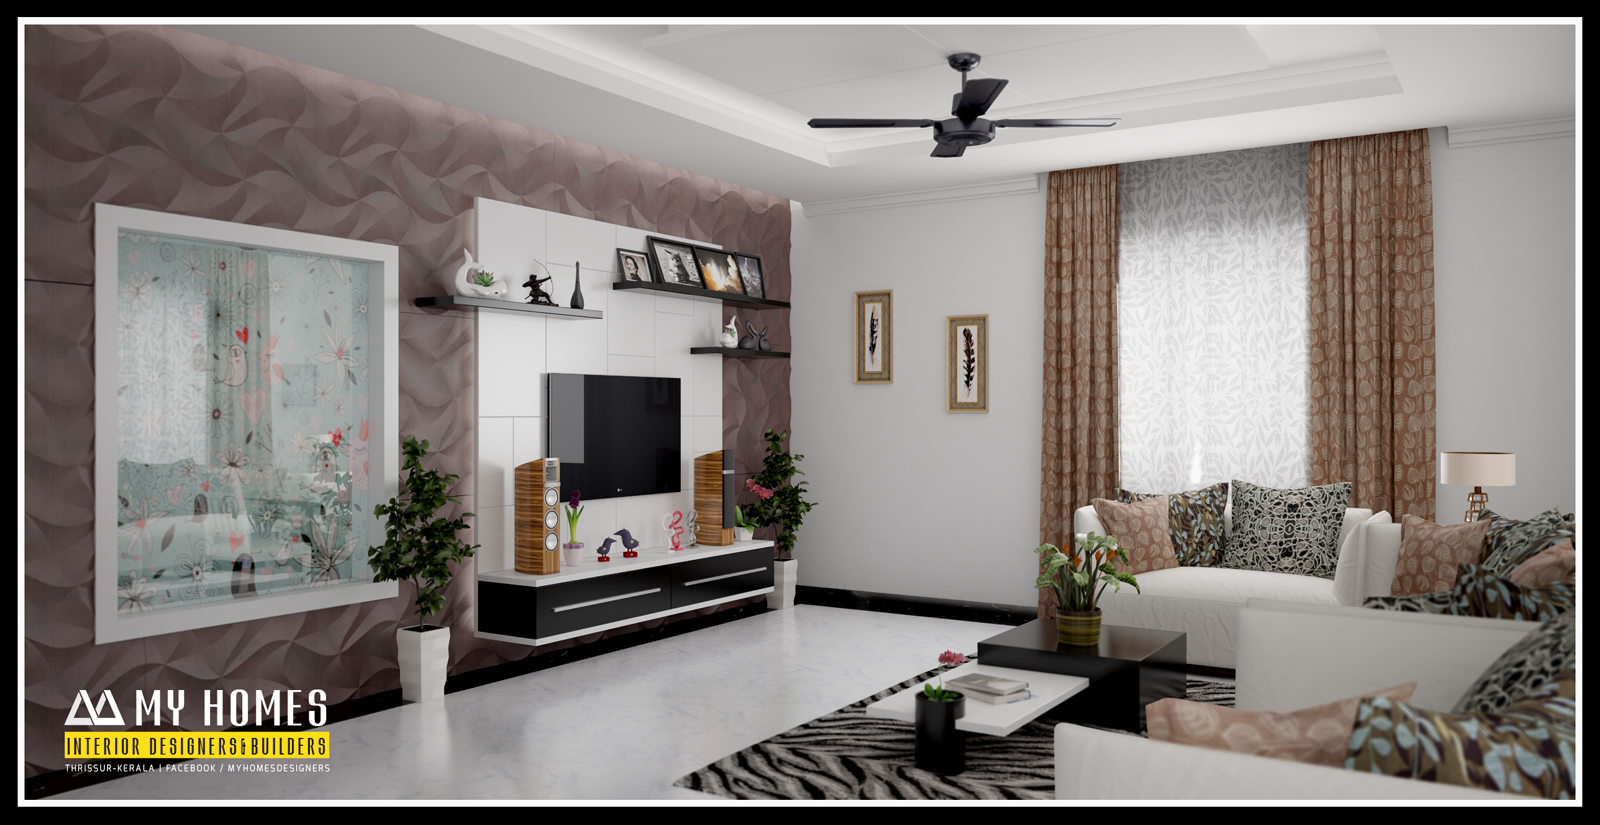 Kerala living room interiors interior ideas for Kerala interior designs